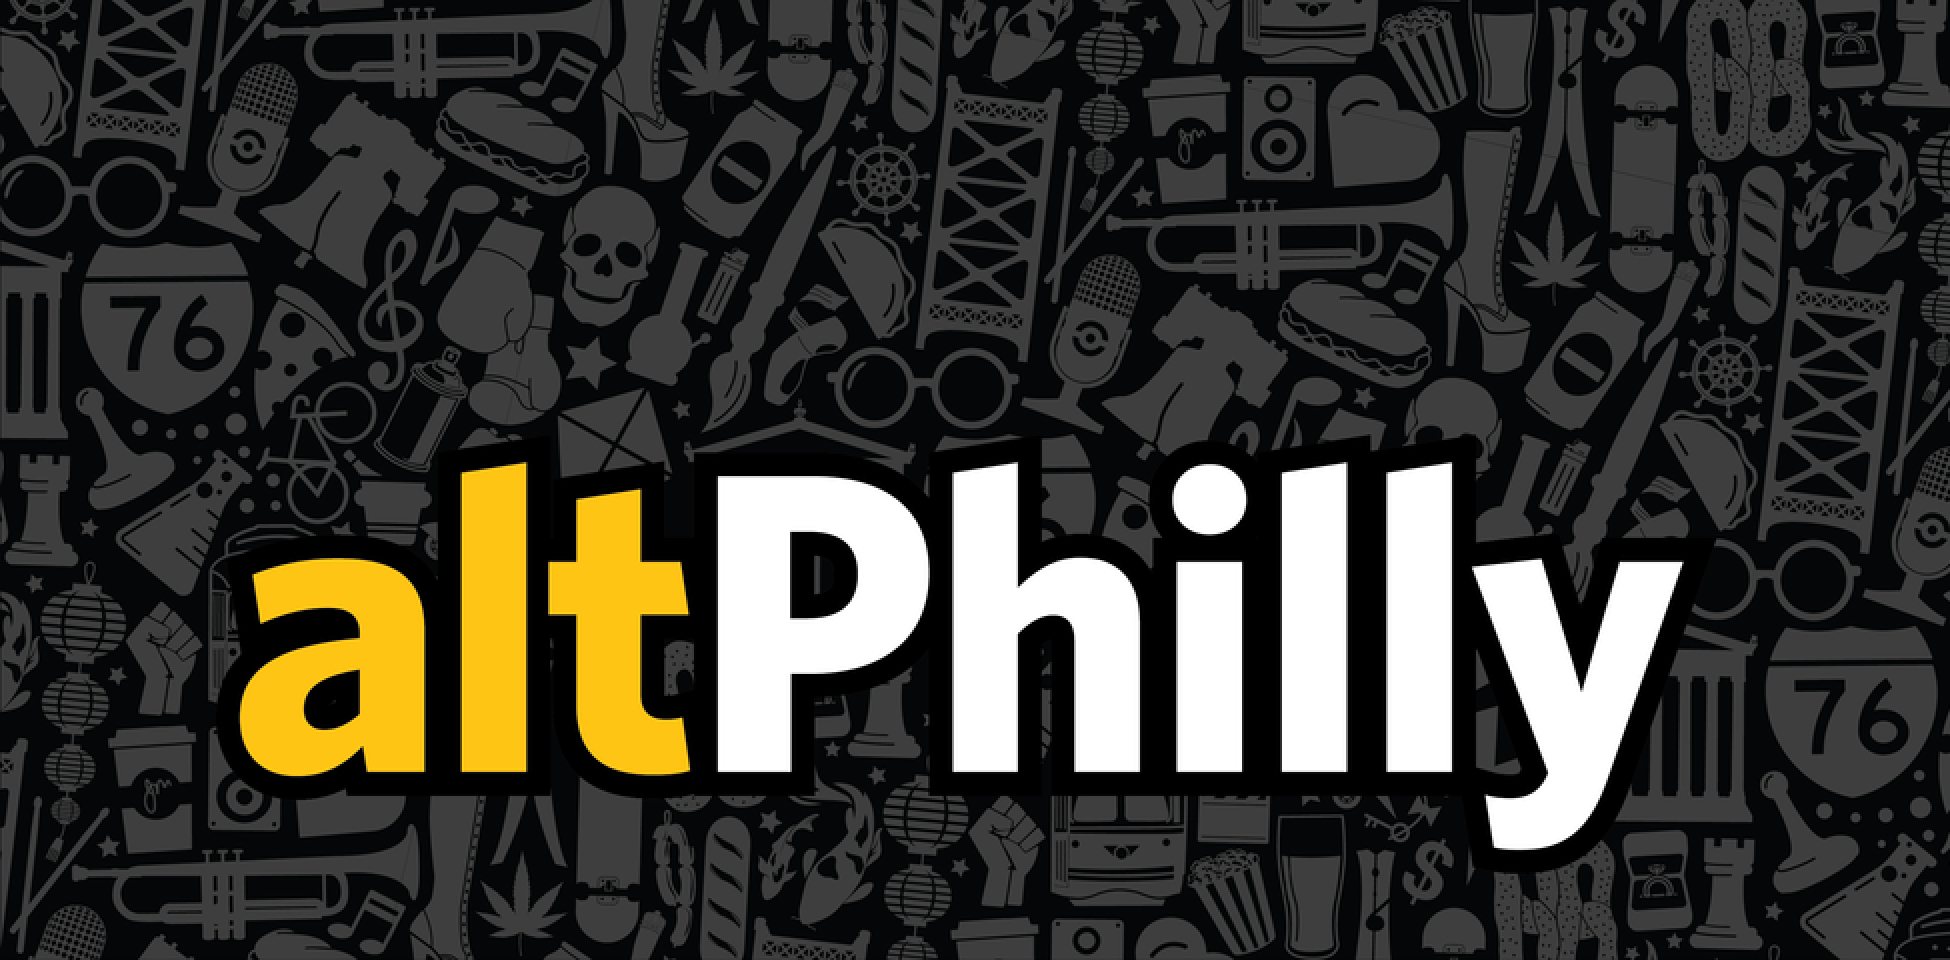 Alt Philly